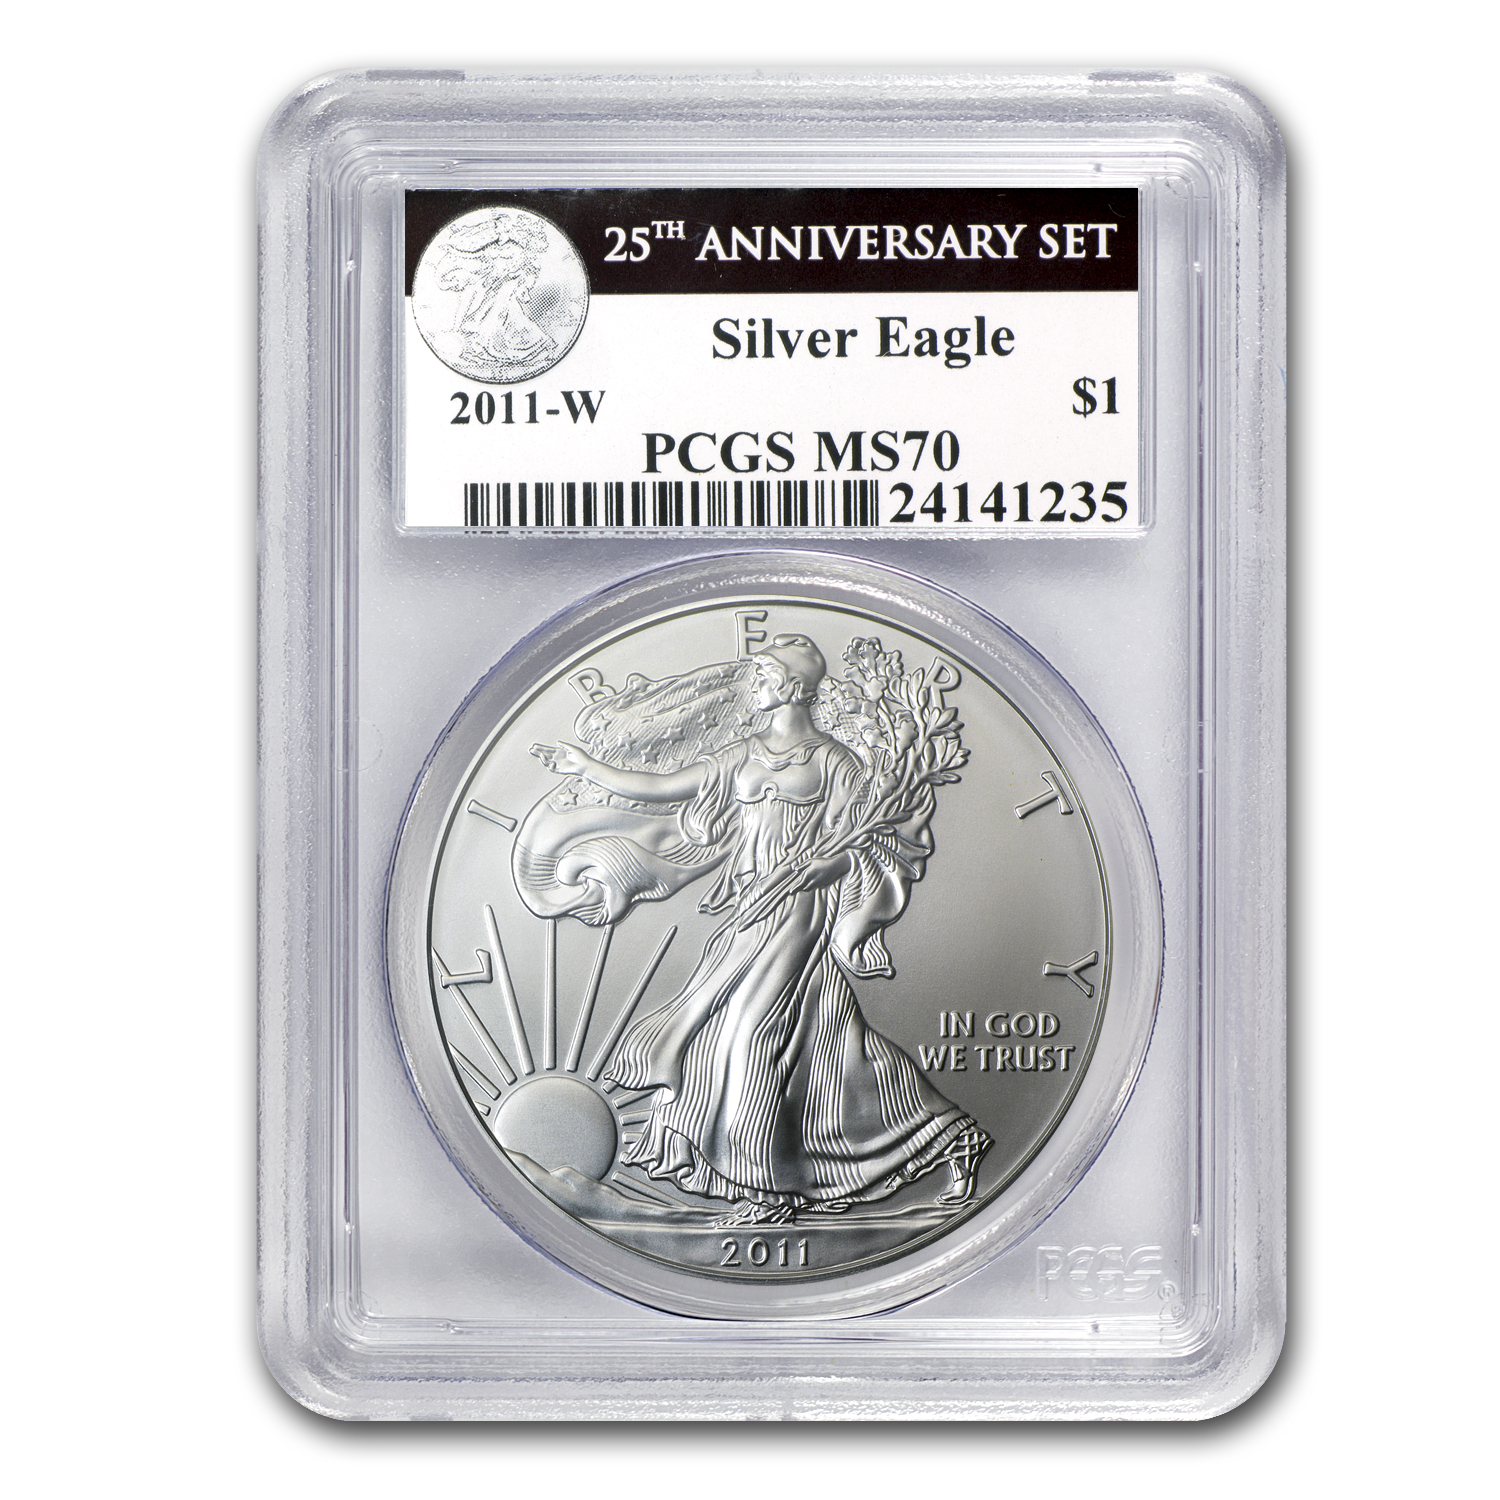 2011-W Burnished Silver Eagle MS-70 PCGS (25th Anniv, Blk Label)